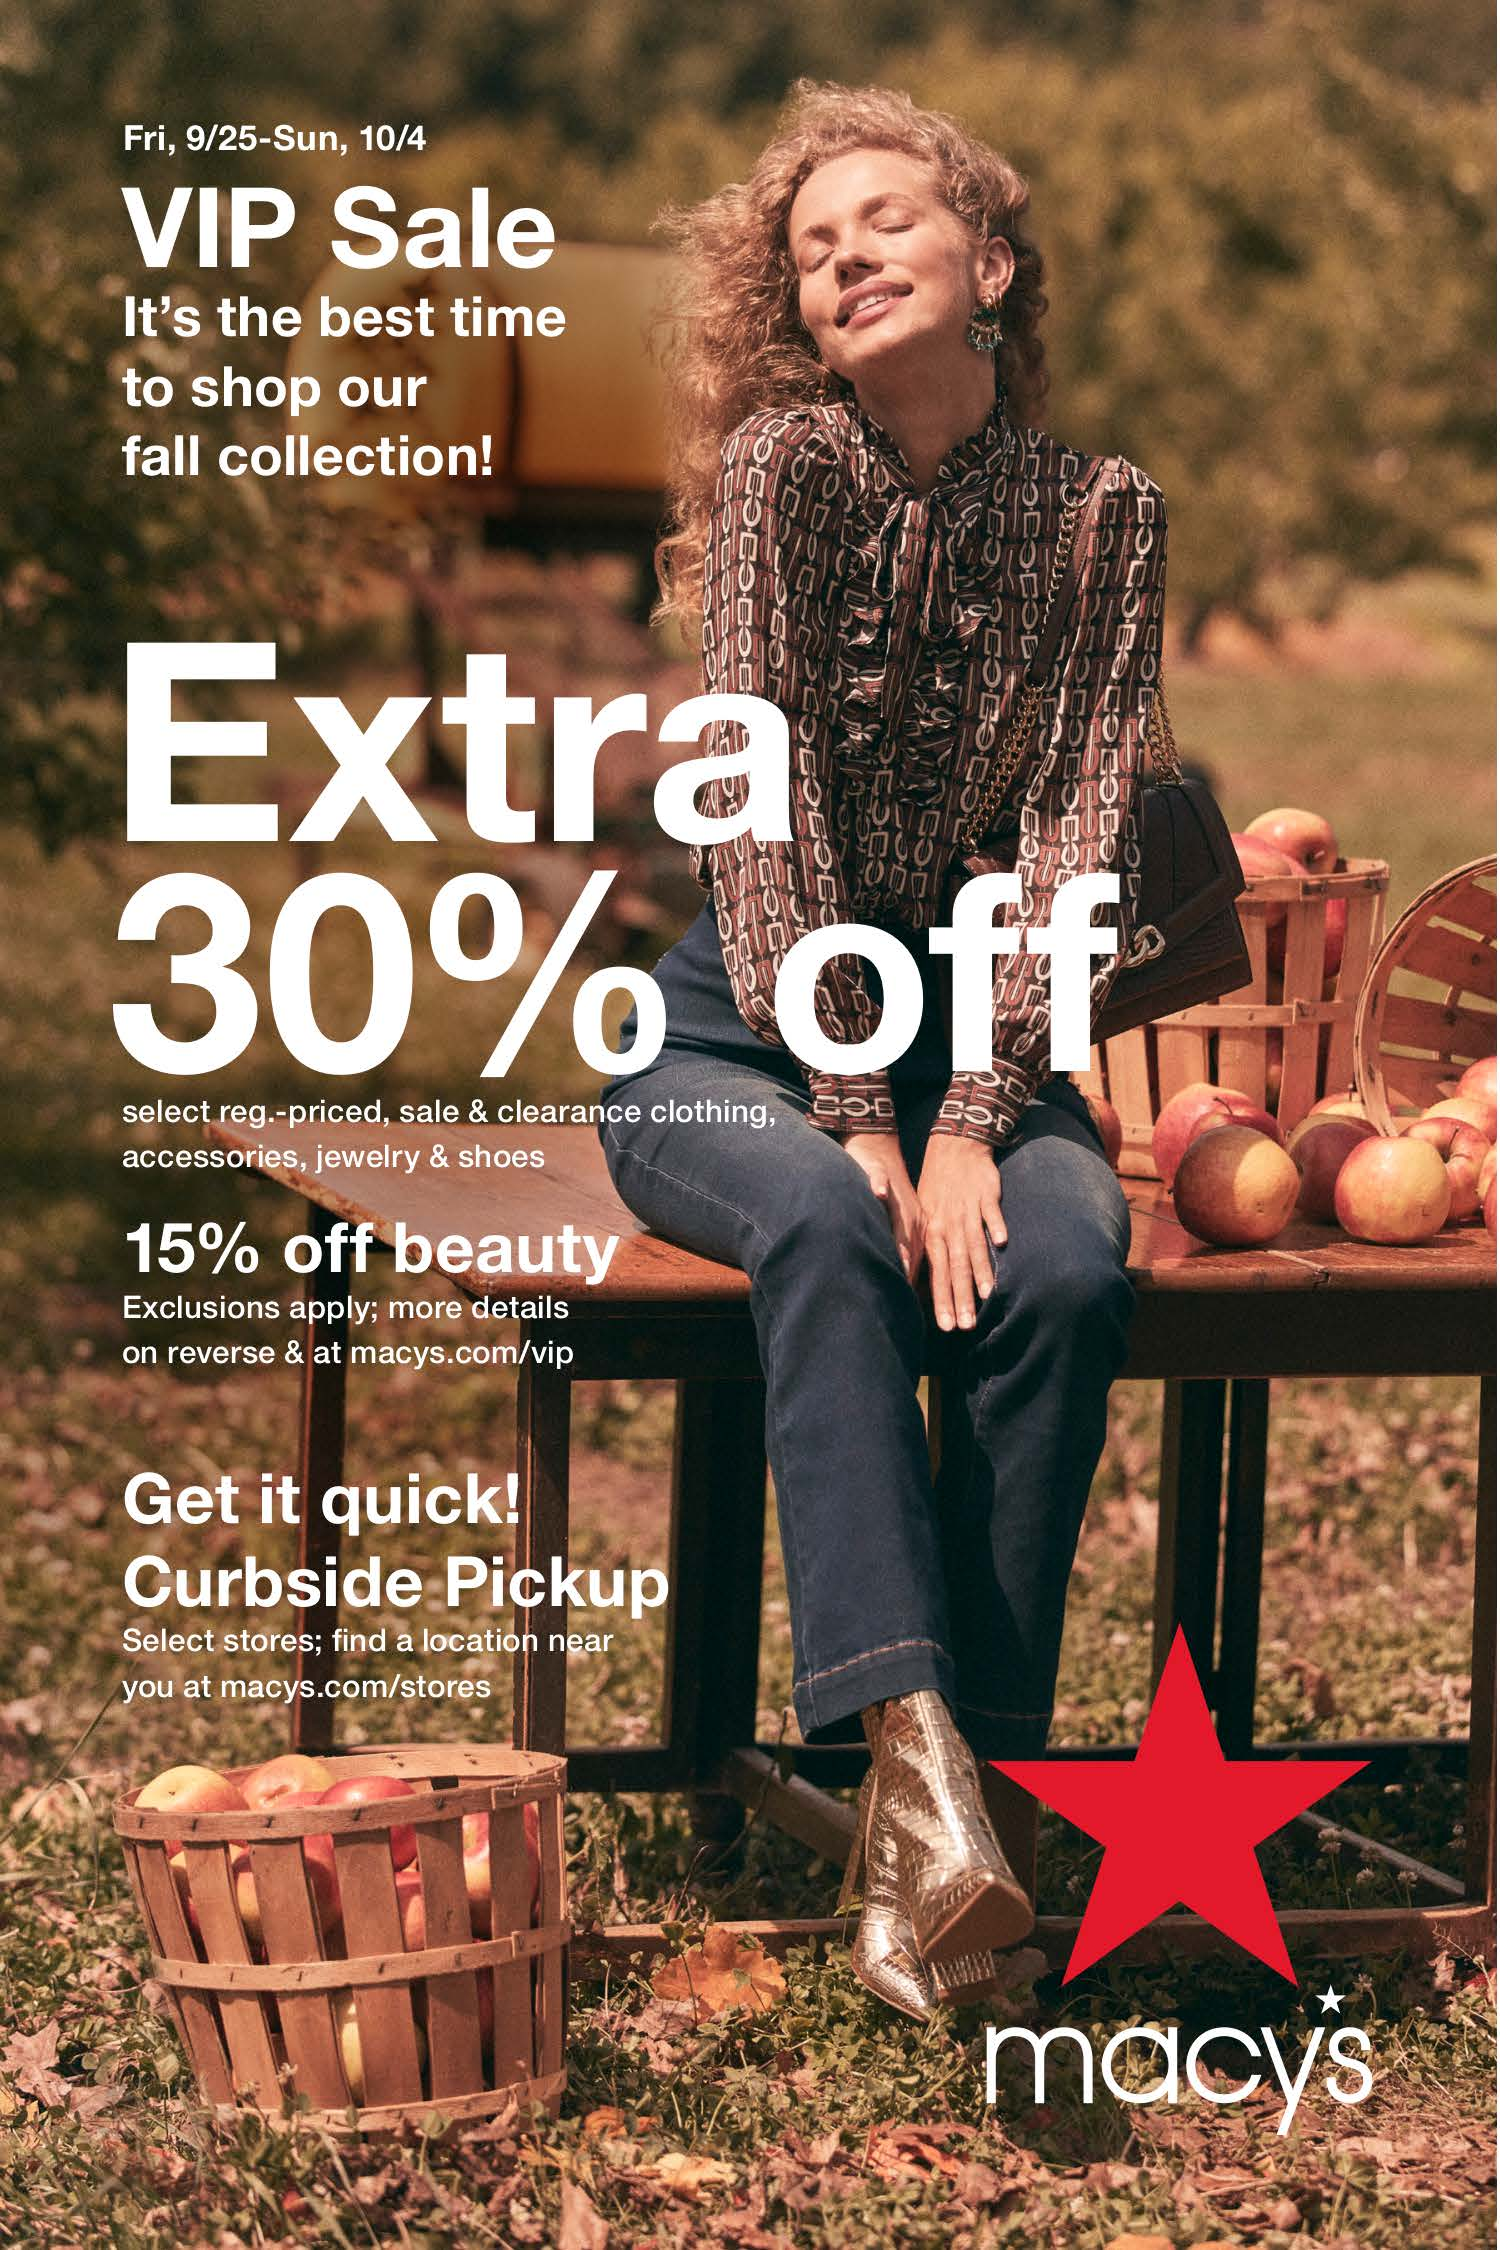 Macy's Fall Event from macy's